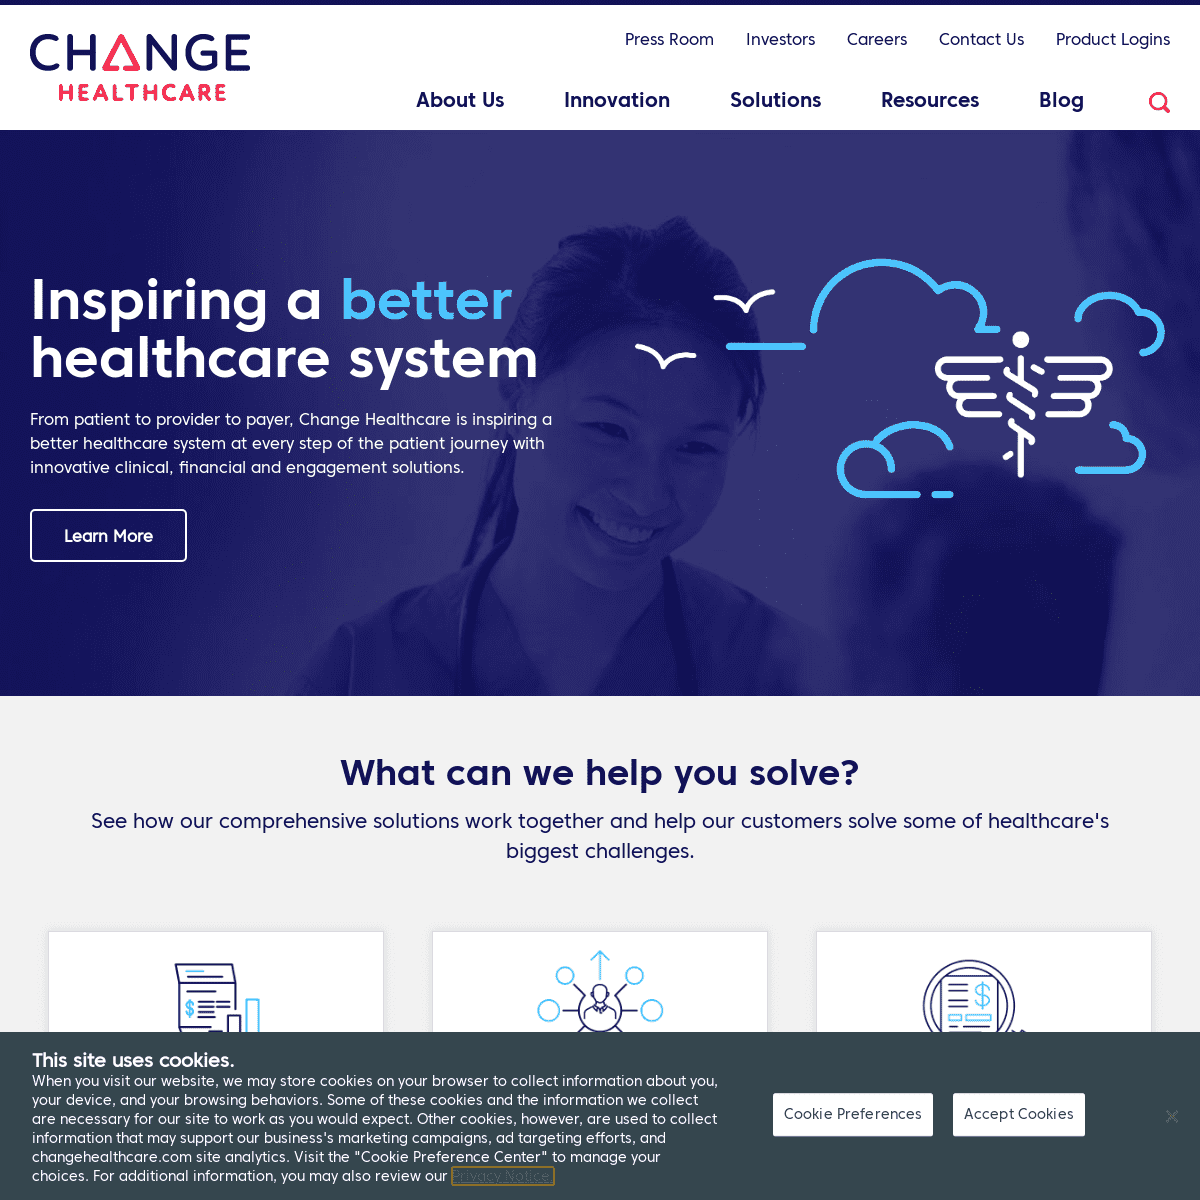 Healthcare Technology & Business Solutions Company - Change Healthcare